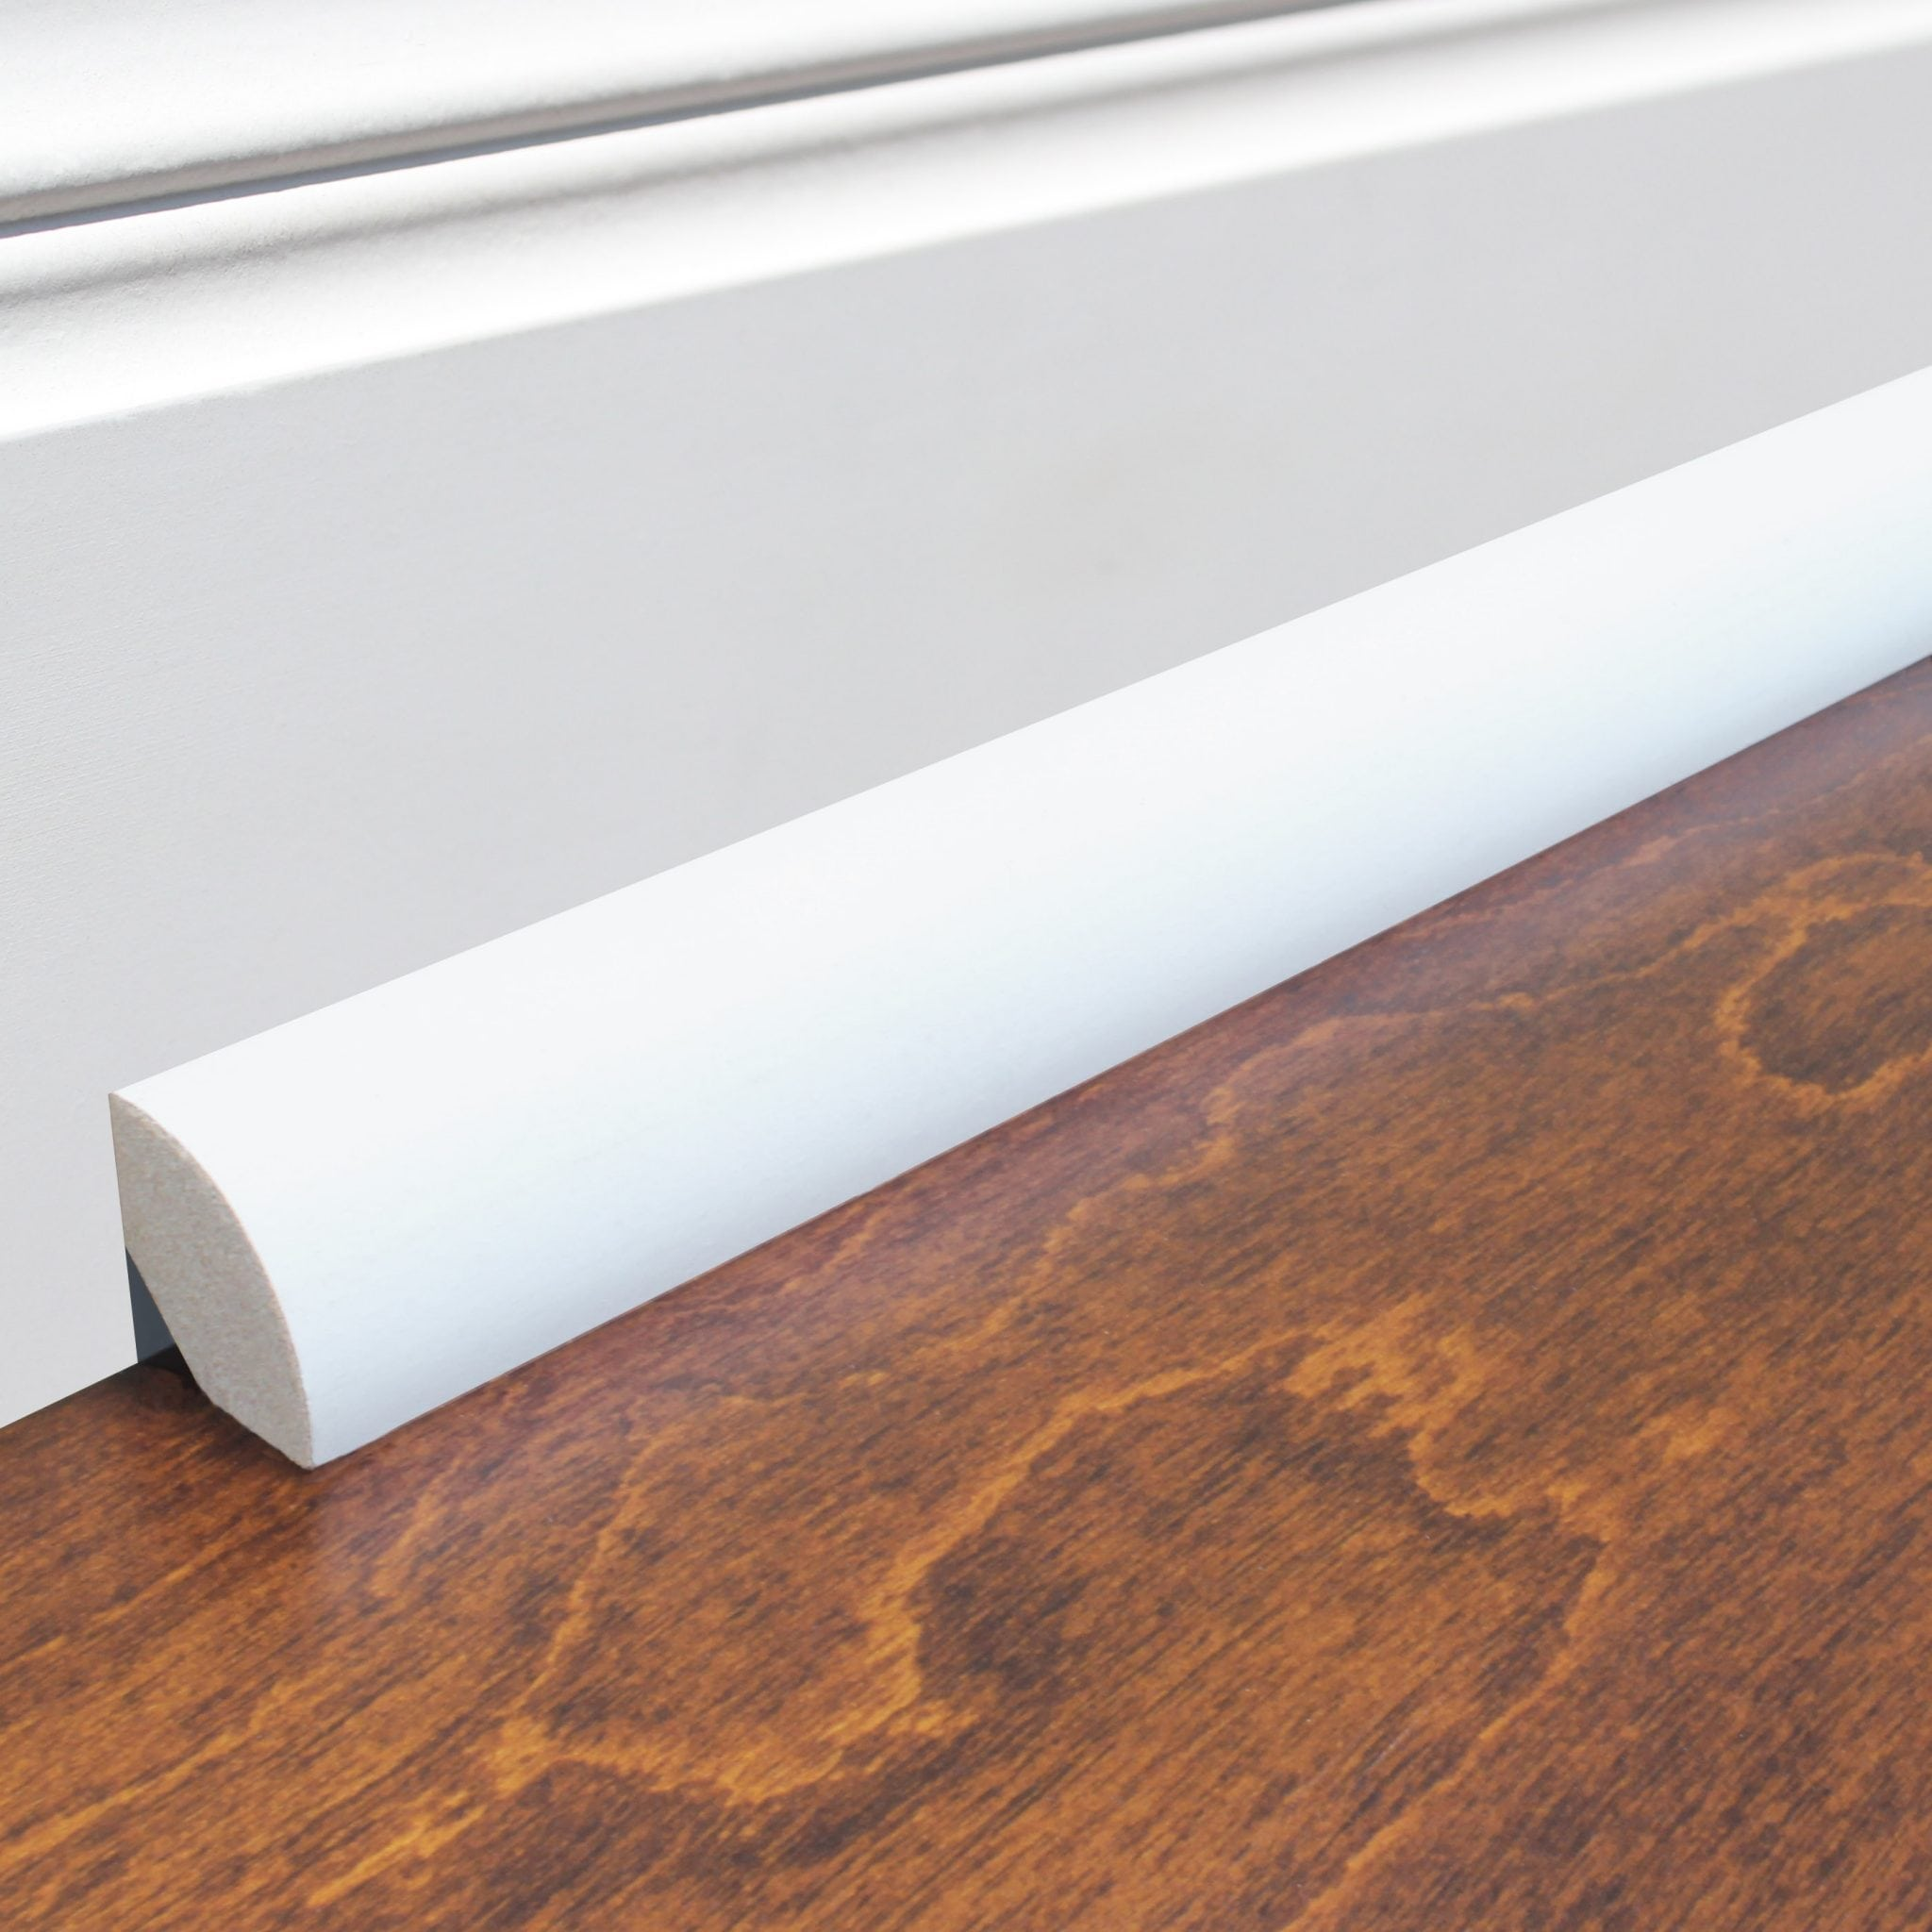 Primed Moldings Amp Baseboards Flooring Wholesale And